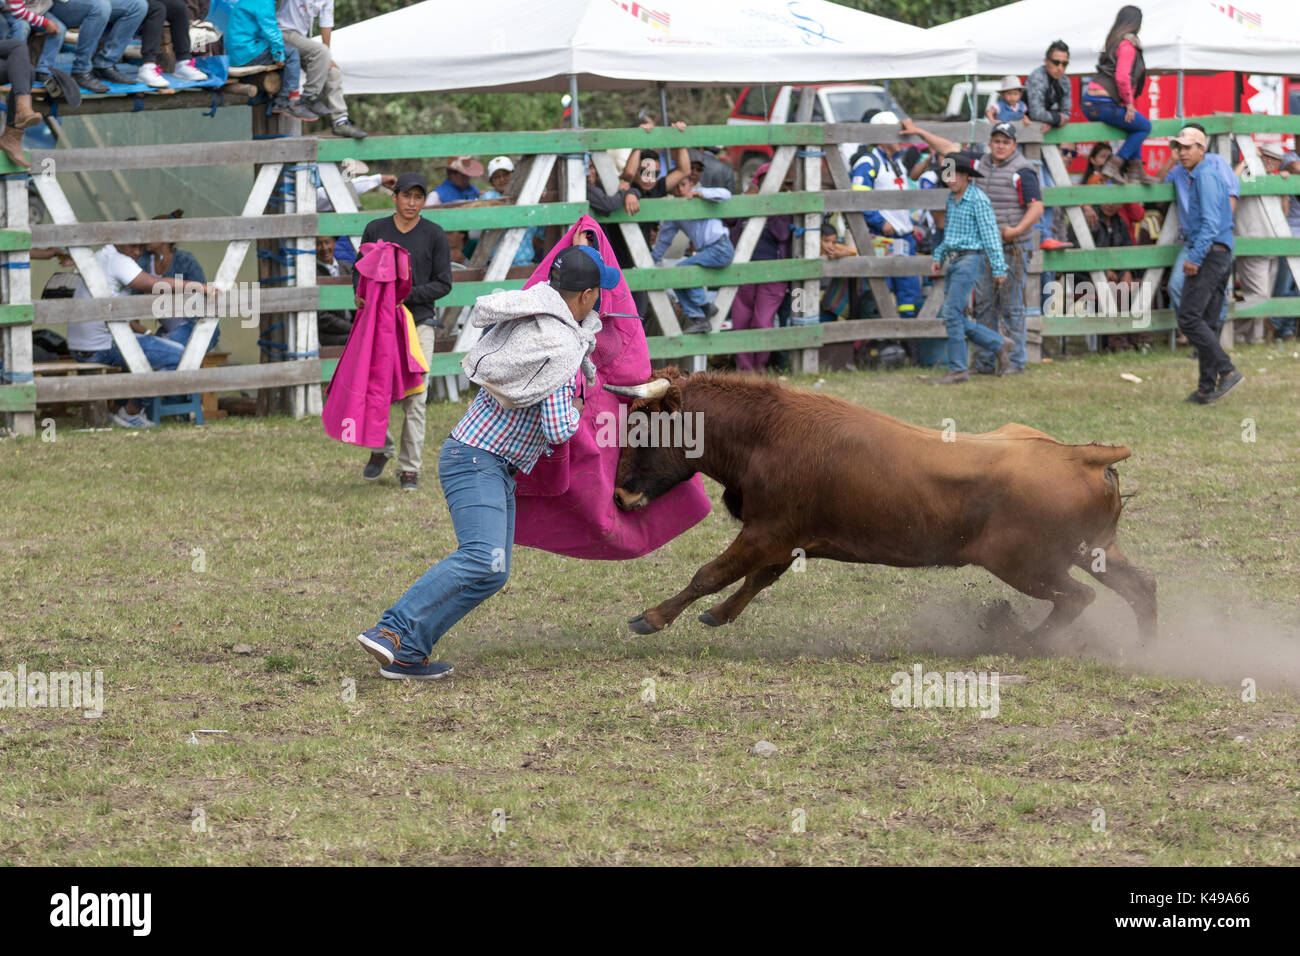 May 28, 2017 Sangolqui, Ecuador: man holding up a cape charged by a bull at a rural amateur bullfight in the Andes - Stock Image